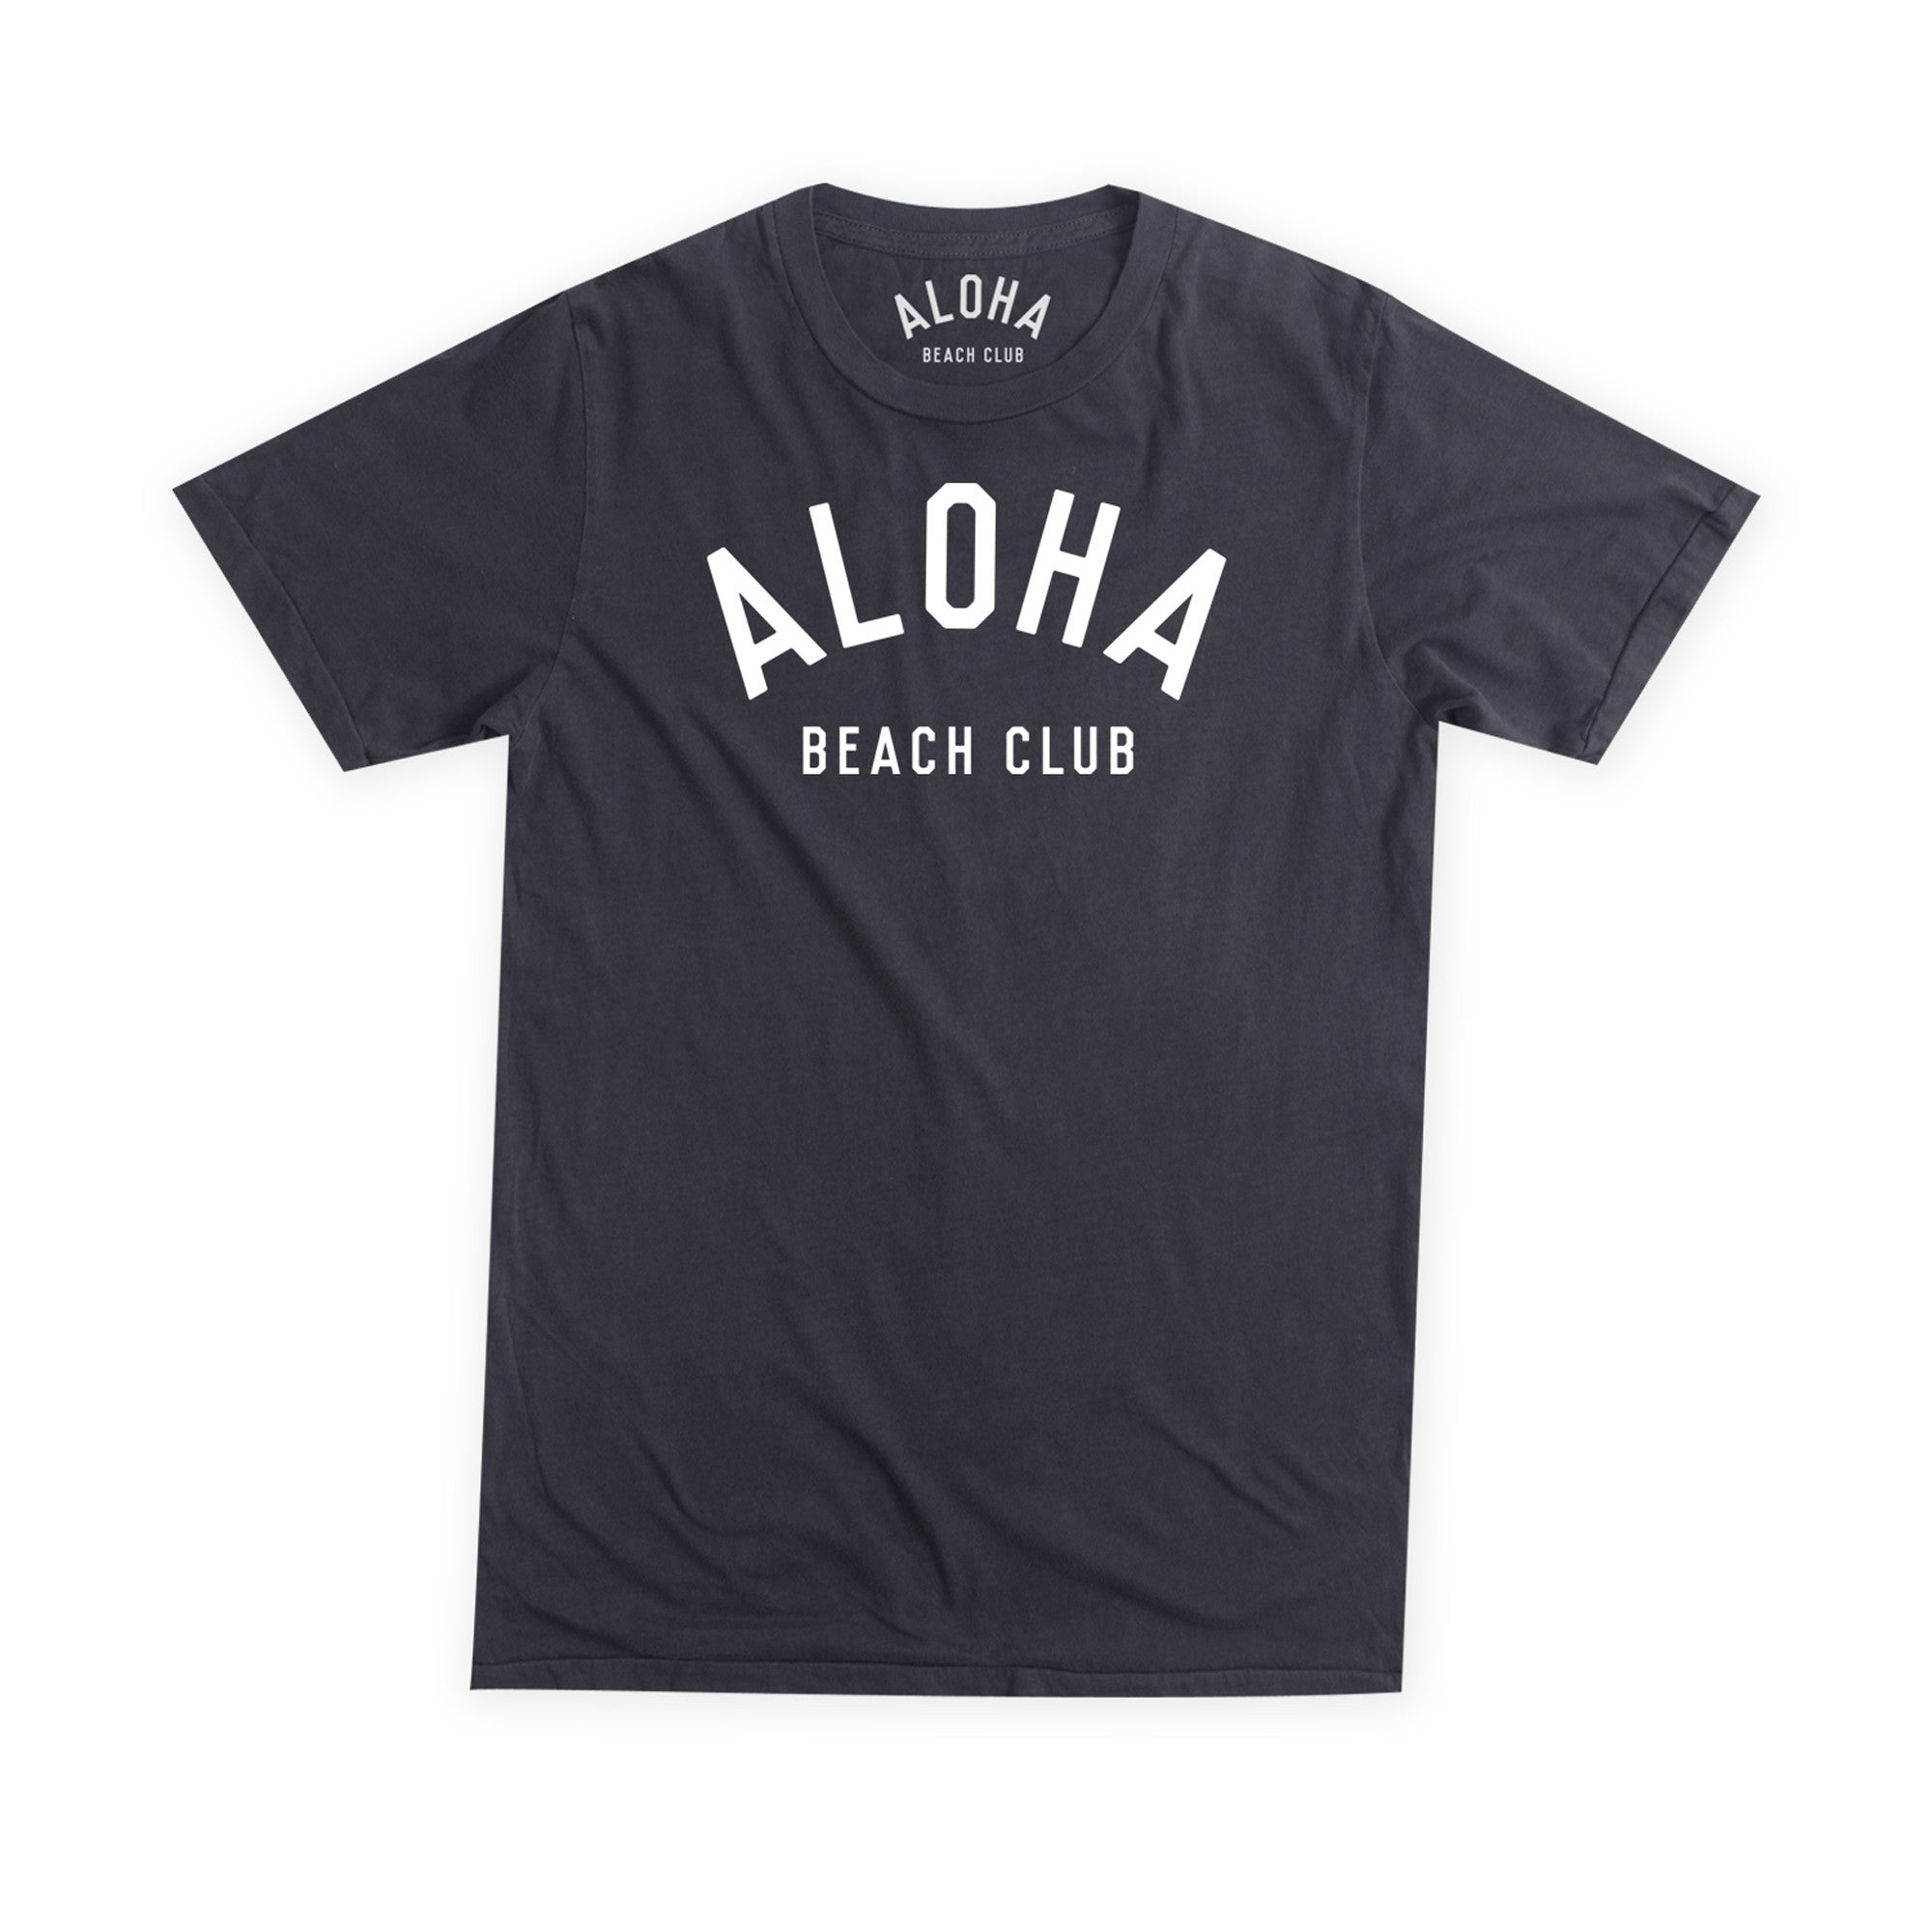 Aloha Beach Club - Crew Tee Black - Aloha Beach Club